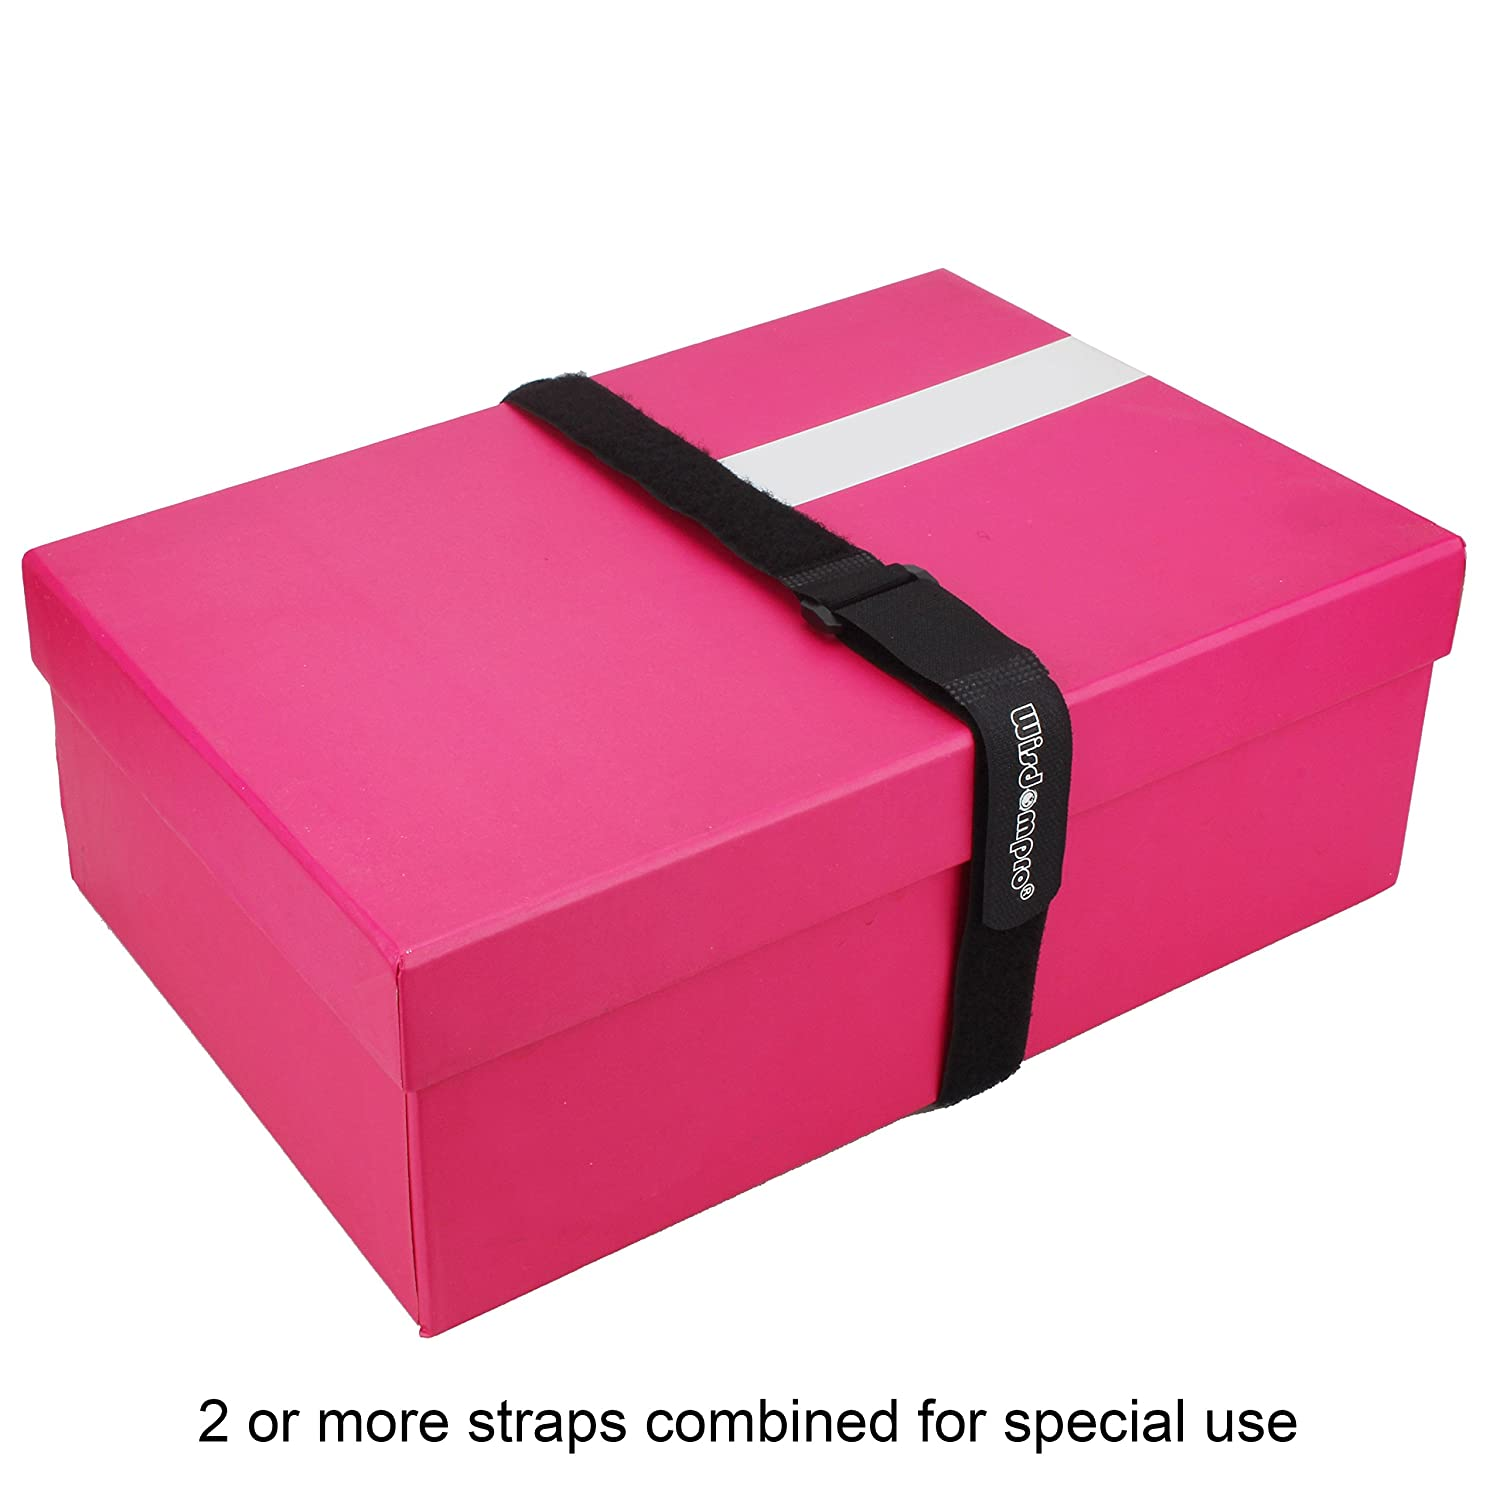 Reusable 0.6 x 6.6Ft Workspace from Tangled Messes of Cords Durable Functional Ties to Keep Your Home 0.6 x 6.6Ft, 4 Roll Hook and Loop Reusable Fastening Cable Tie Down Straps by Wisdompro Office Workspace from Tangled Messes of Cords